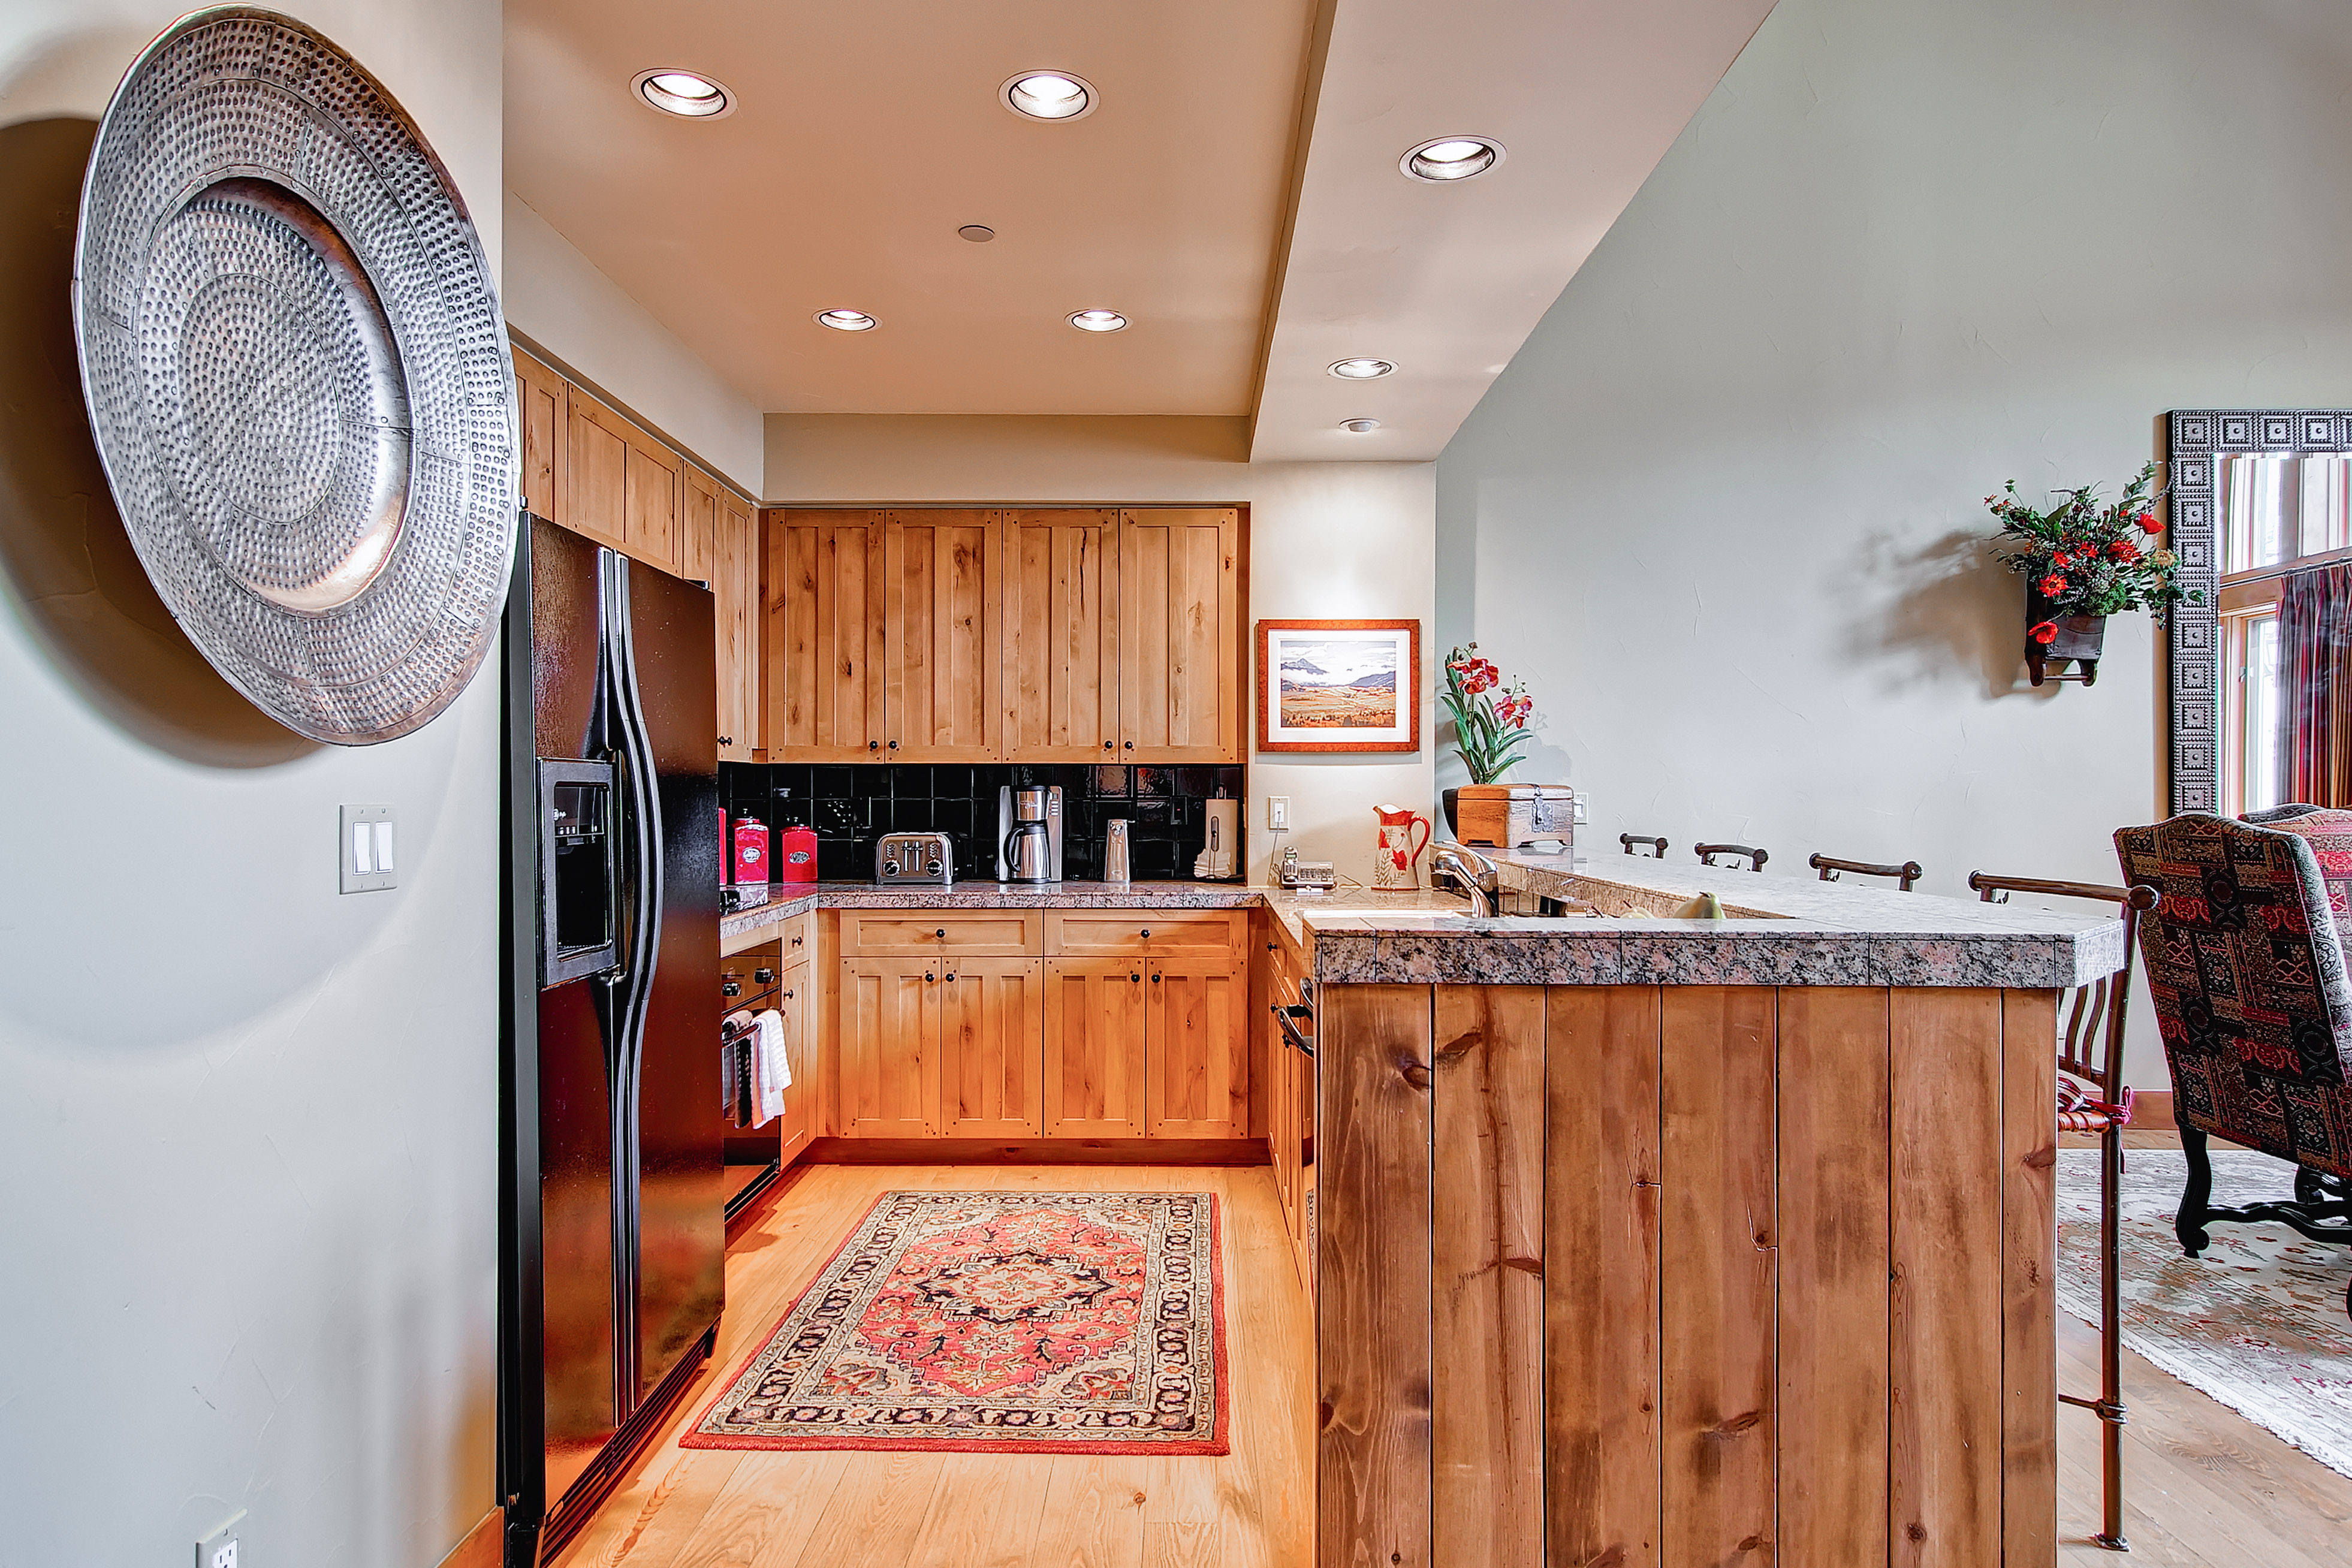 Property Image 1 - Large Beaver Creek Townhome with Vaulted Ceilings